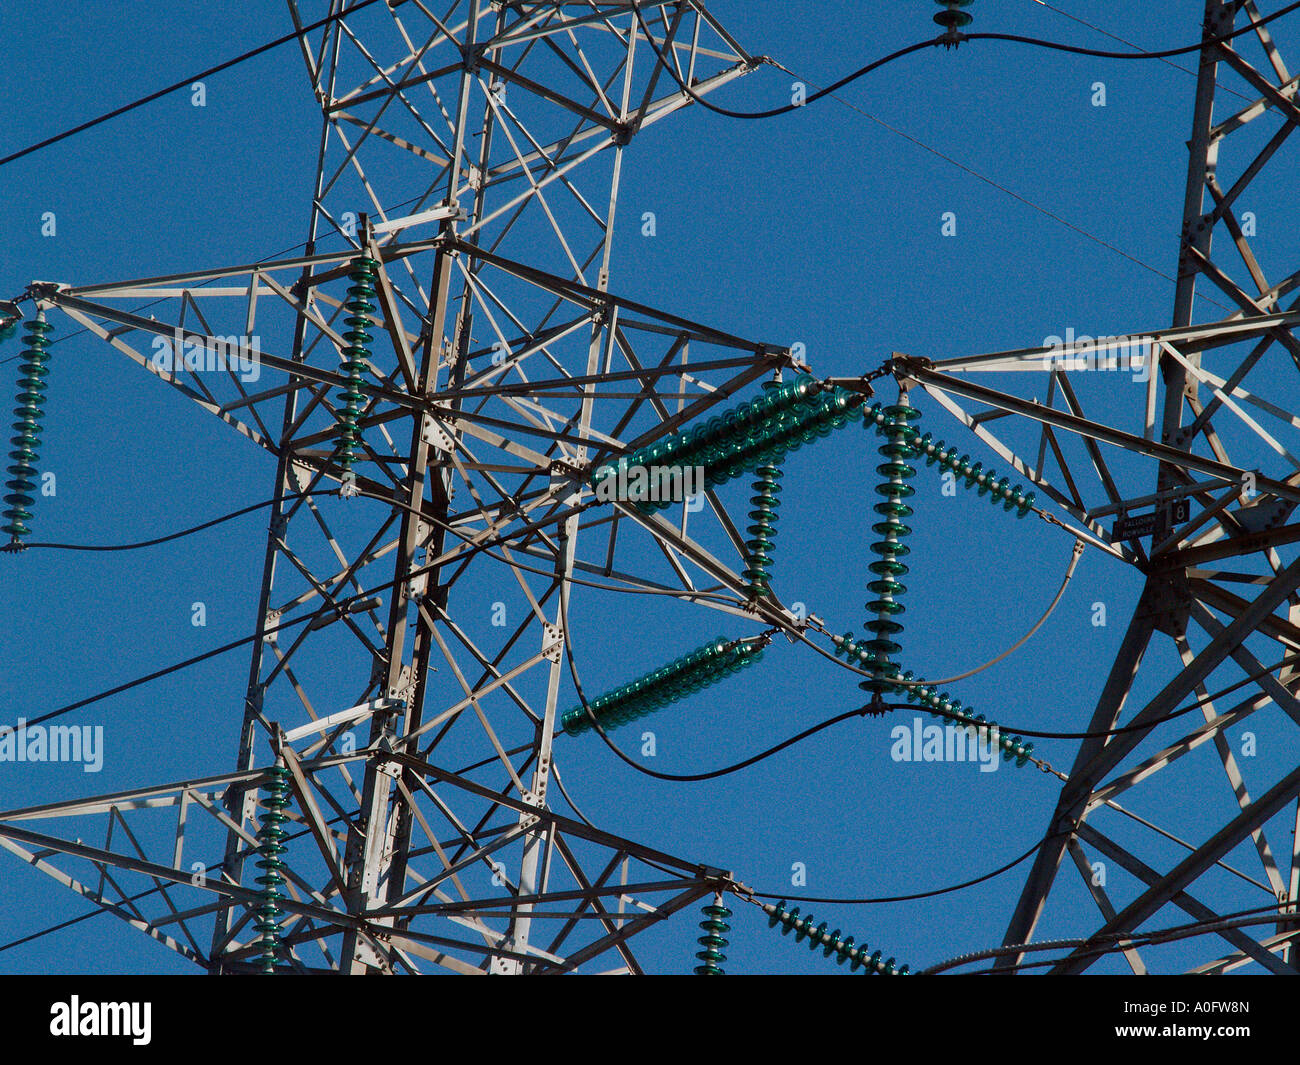 High Tension Power Transmission Towers Stock Photo Alamy